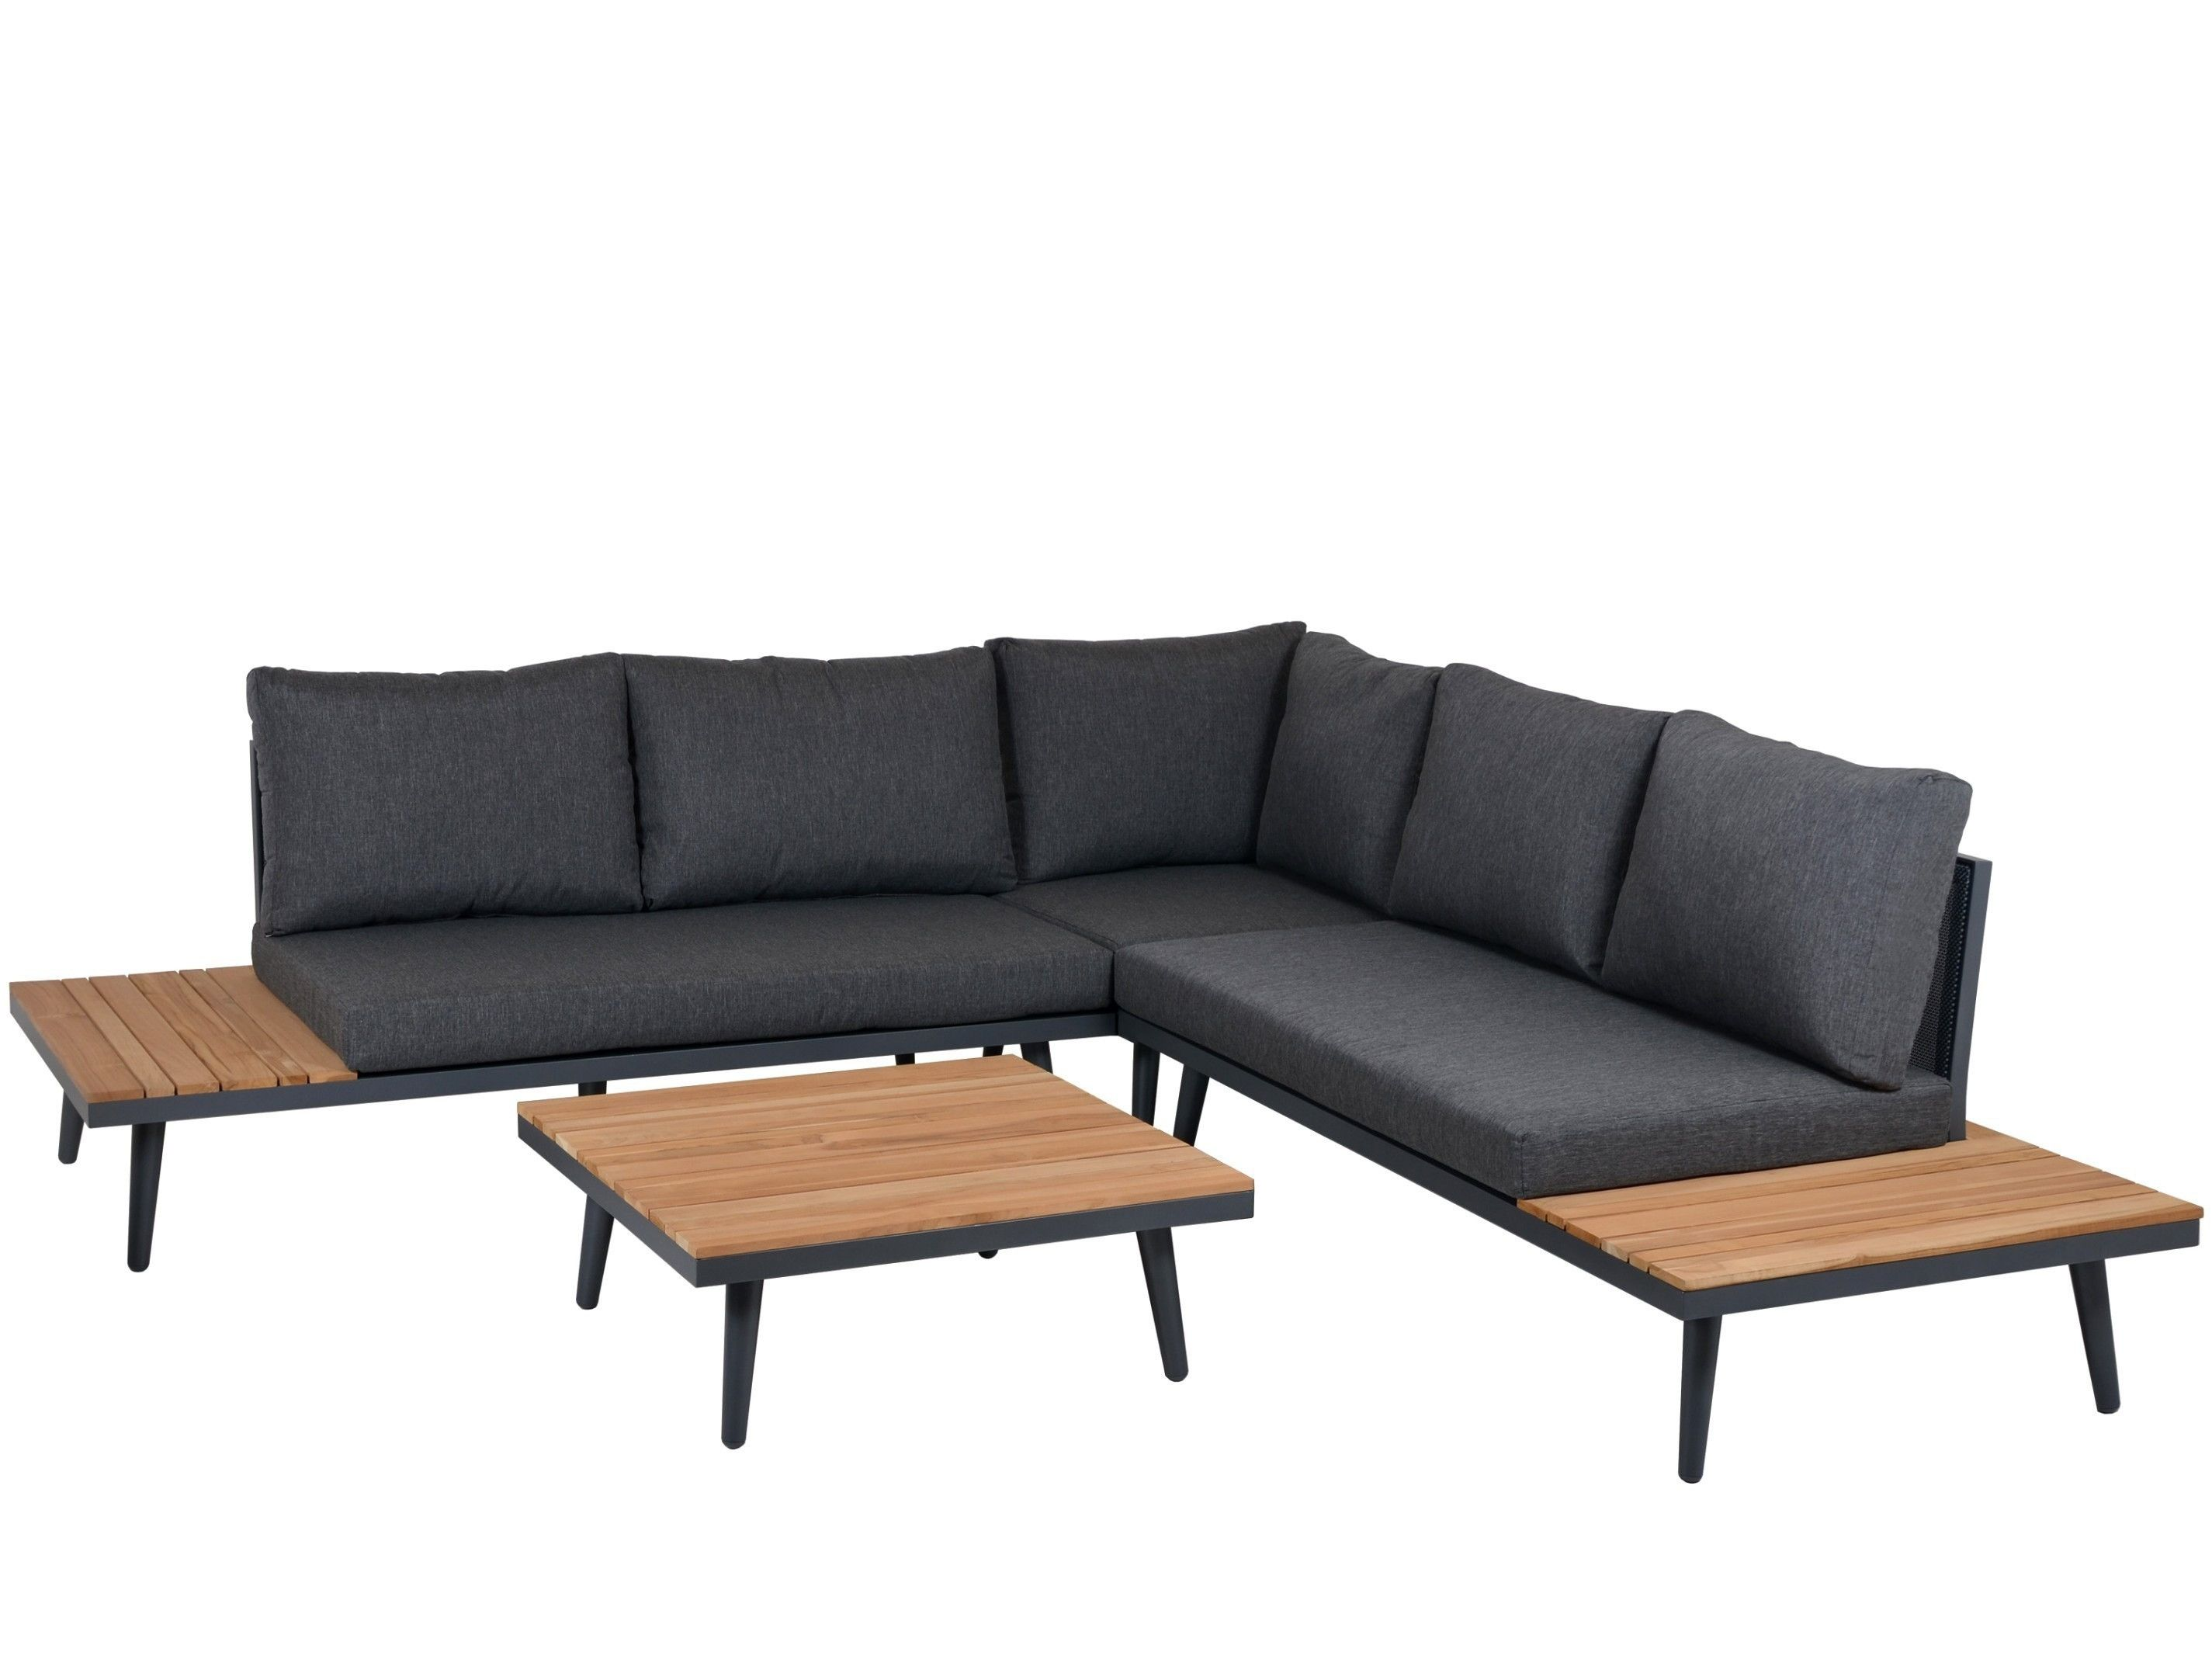 Elektrisches Sofa Kreativ Elektrisches Sofa Couch Möbel Home Furniture Sofa